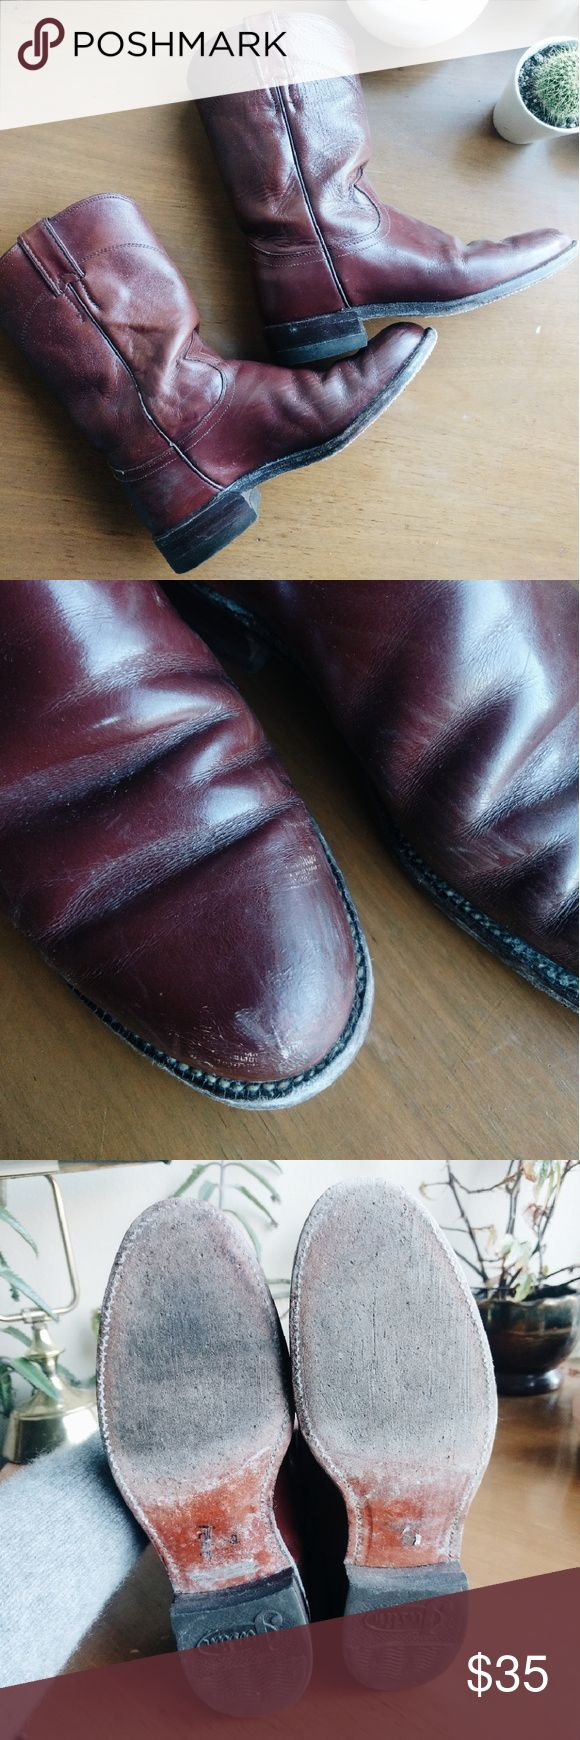 Justin work boots oxblood Distressed leather Justin work boots. Scuffs on toes, and creases in the leather. Western style boot comes mid calf Justin Boots Shoes